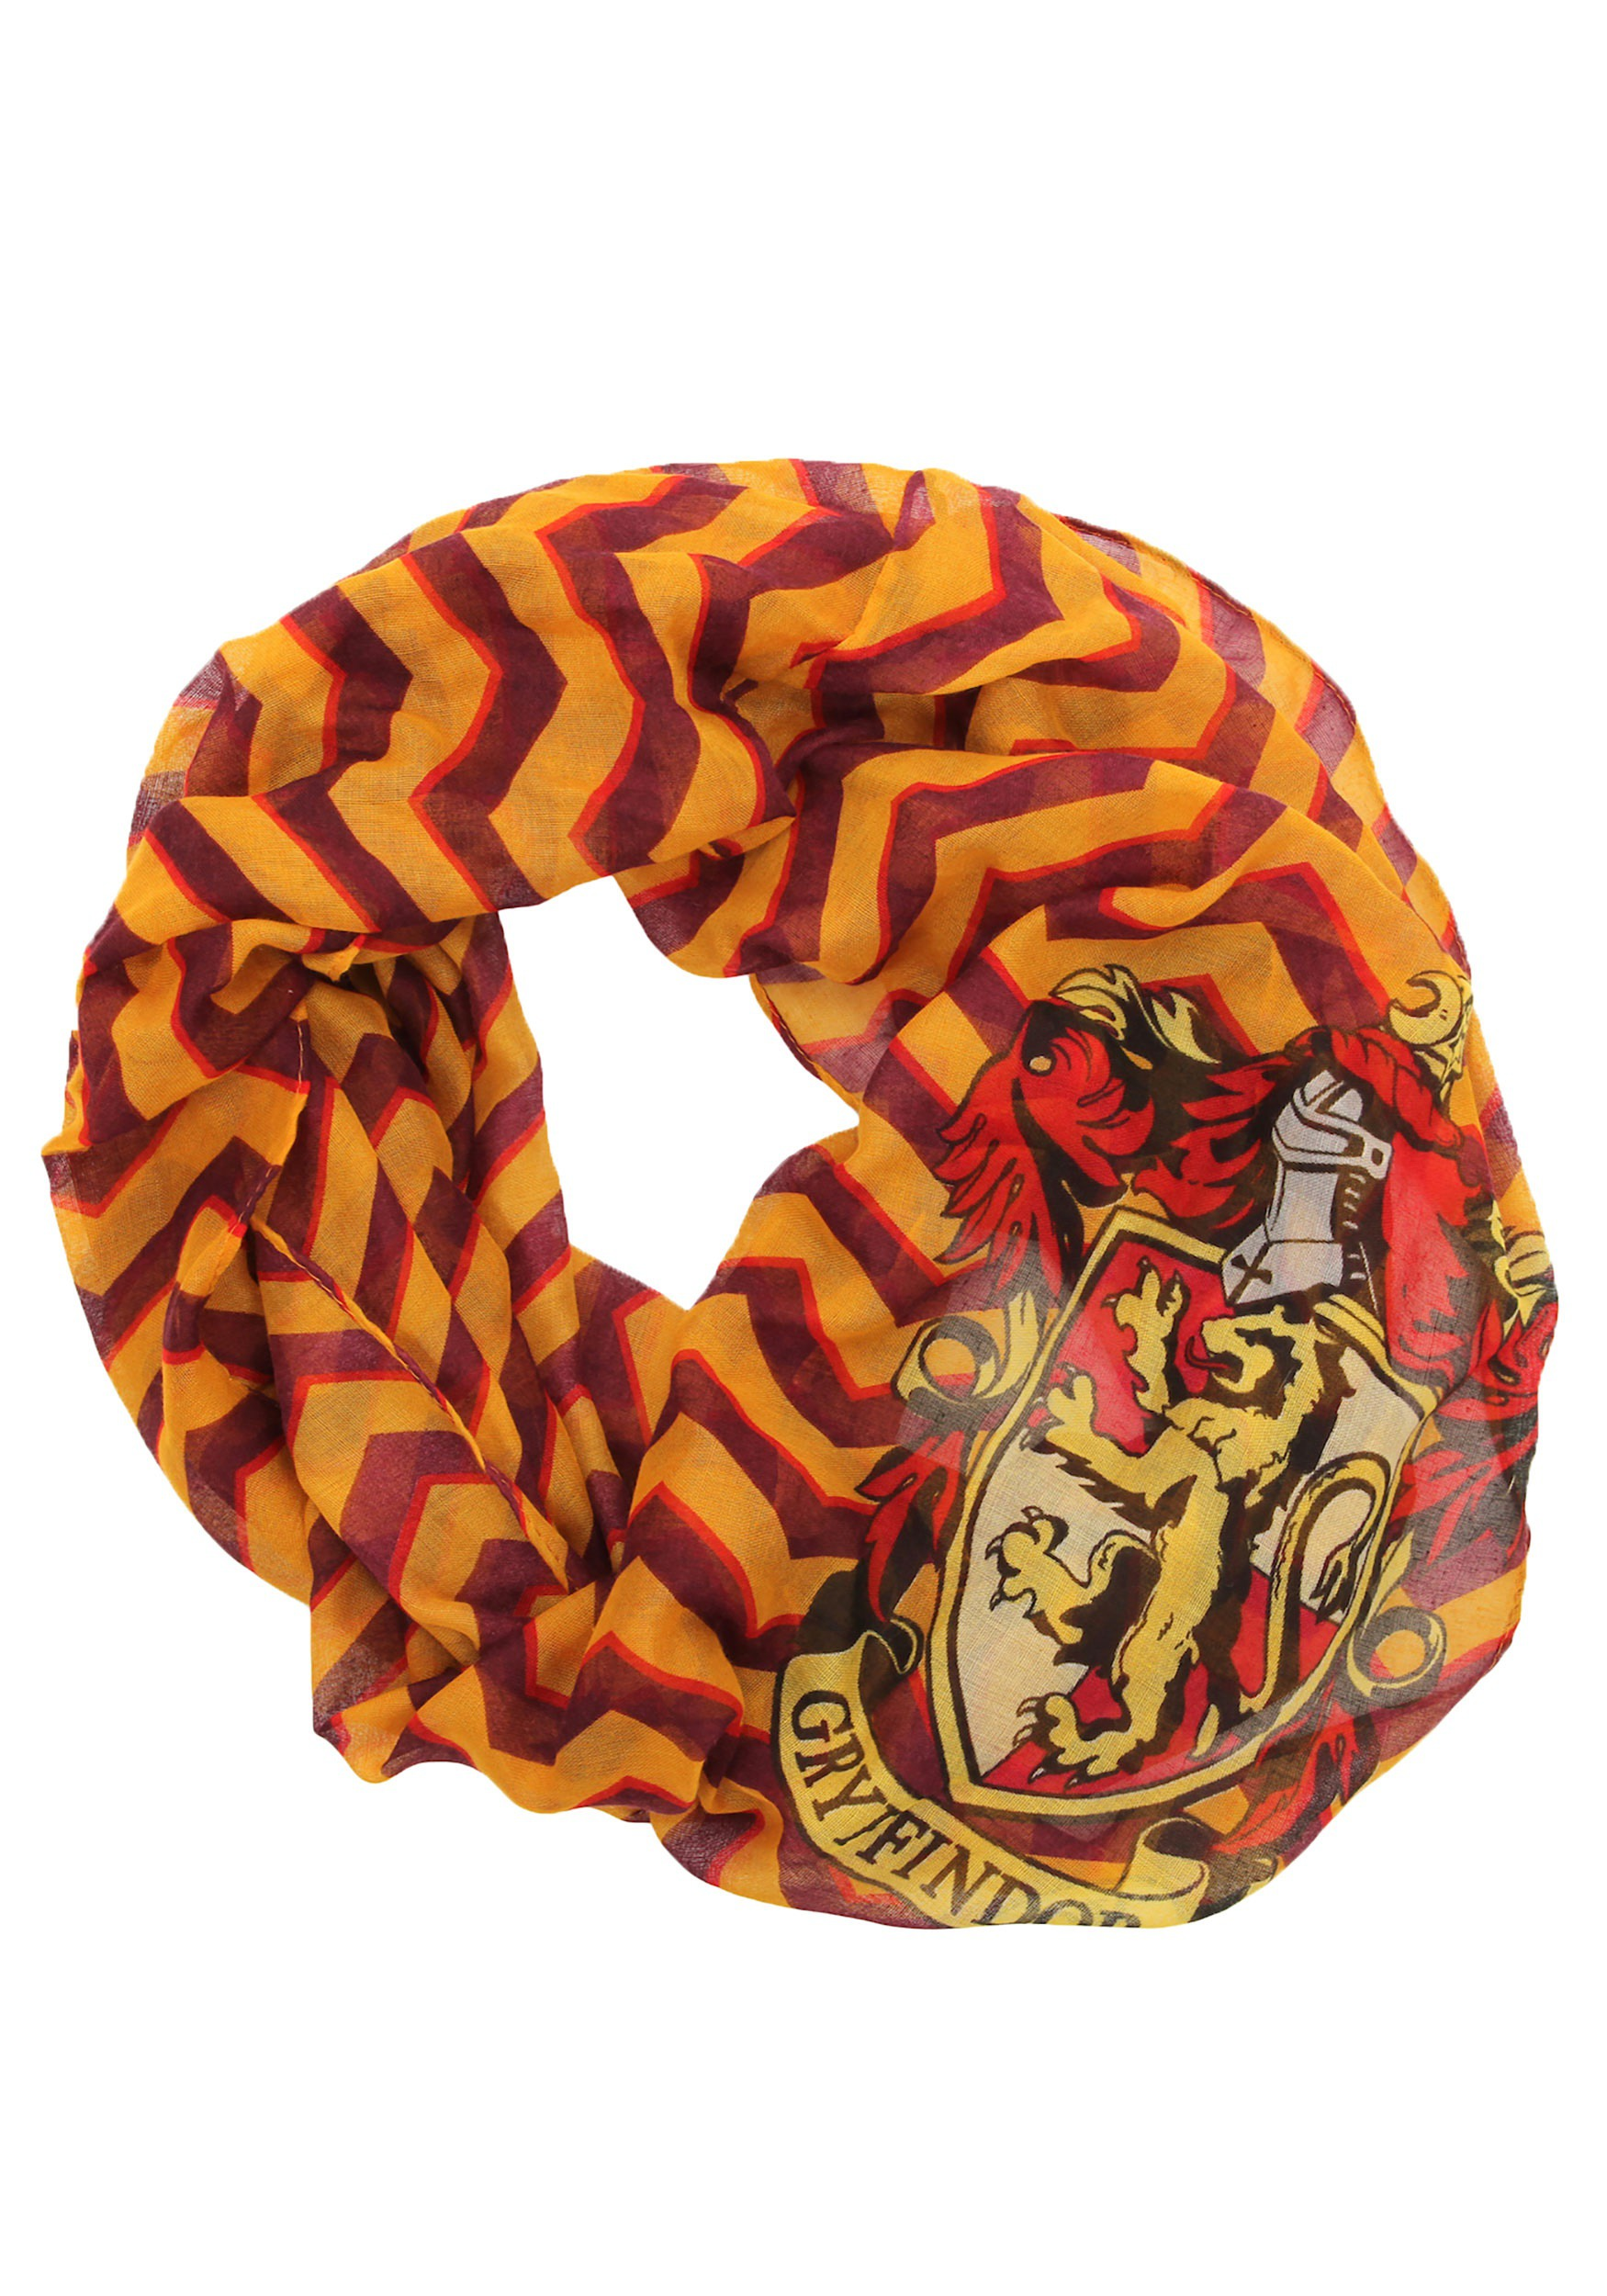 Gryffindor Infinity Scarf from Harry Potter